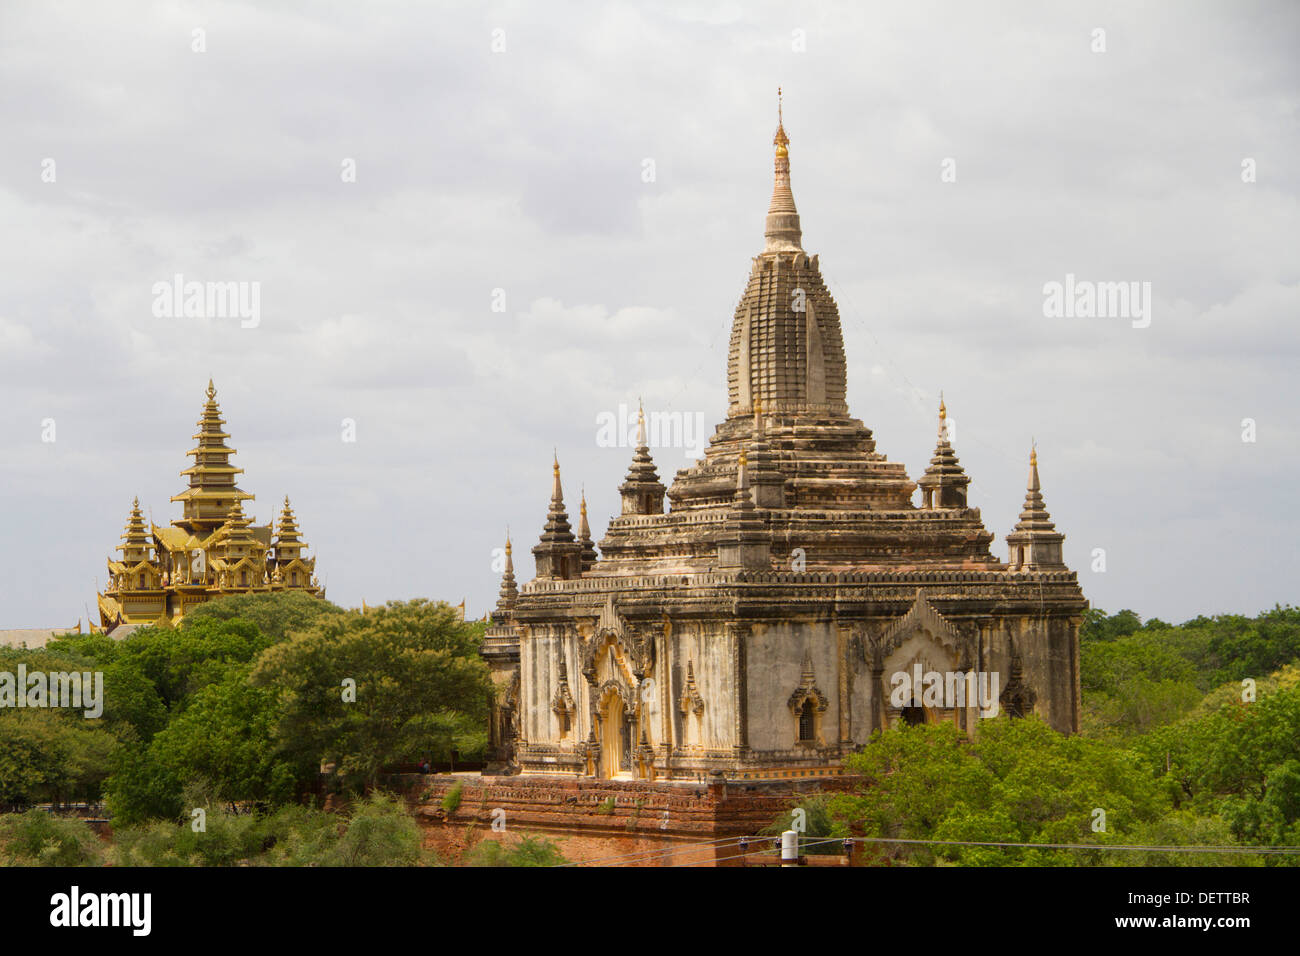 A view of temples from Thatbyinnyu temple in Old Bagan. Stock Photo